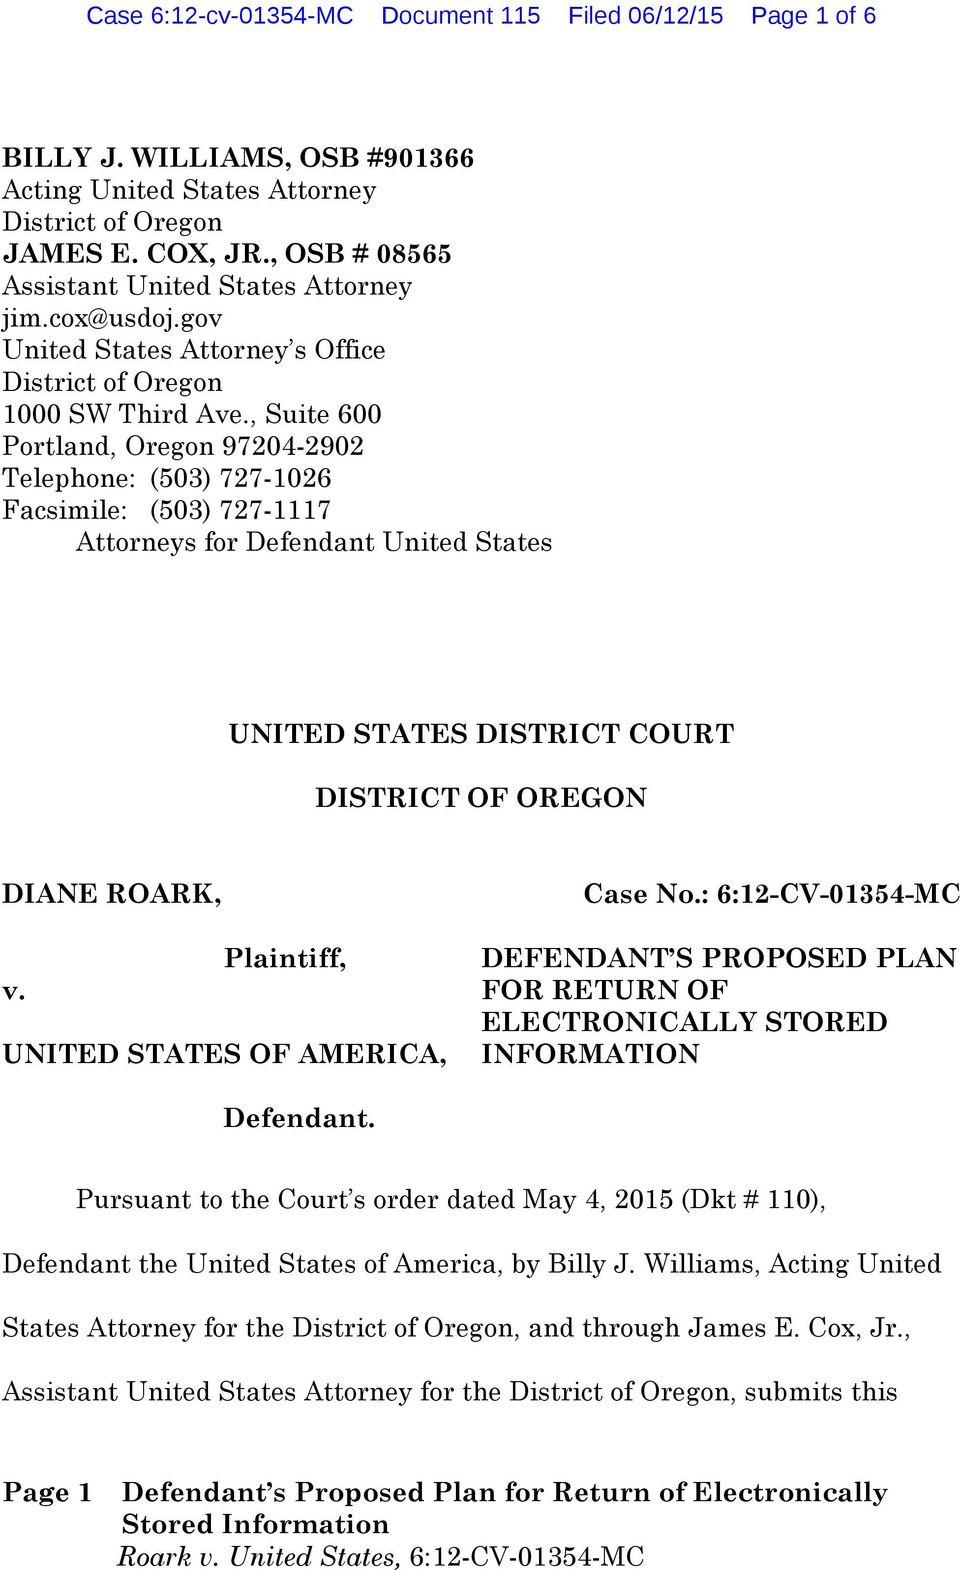 , Suite 600 Portland, Oregon 97204-2902 Telephone: (503) 727-1026 Facsimile: (503) 727-1117 Attorneys for Defendant United States UNITED STATES DISTRICT COURT DISTRICT OF OREGON DIANE ROARK,